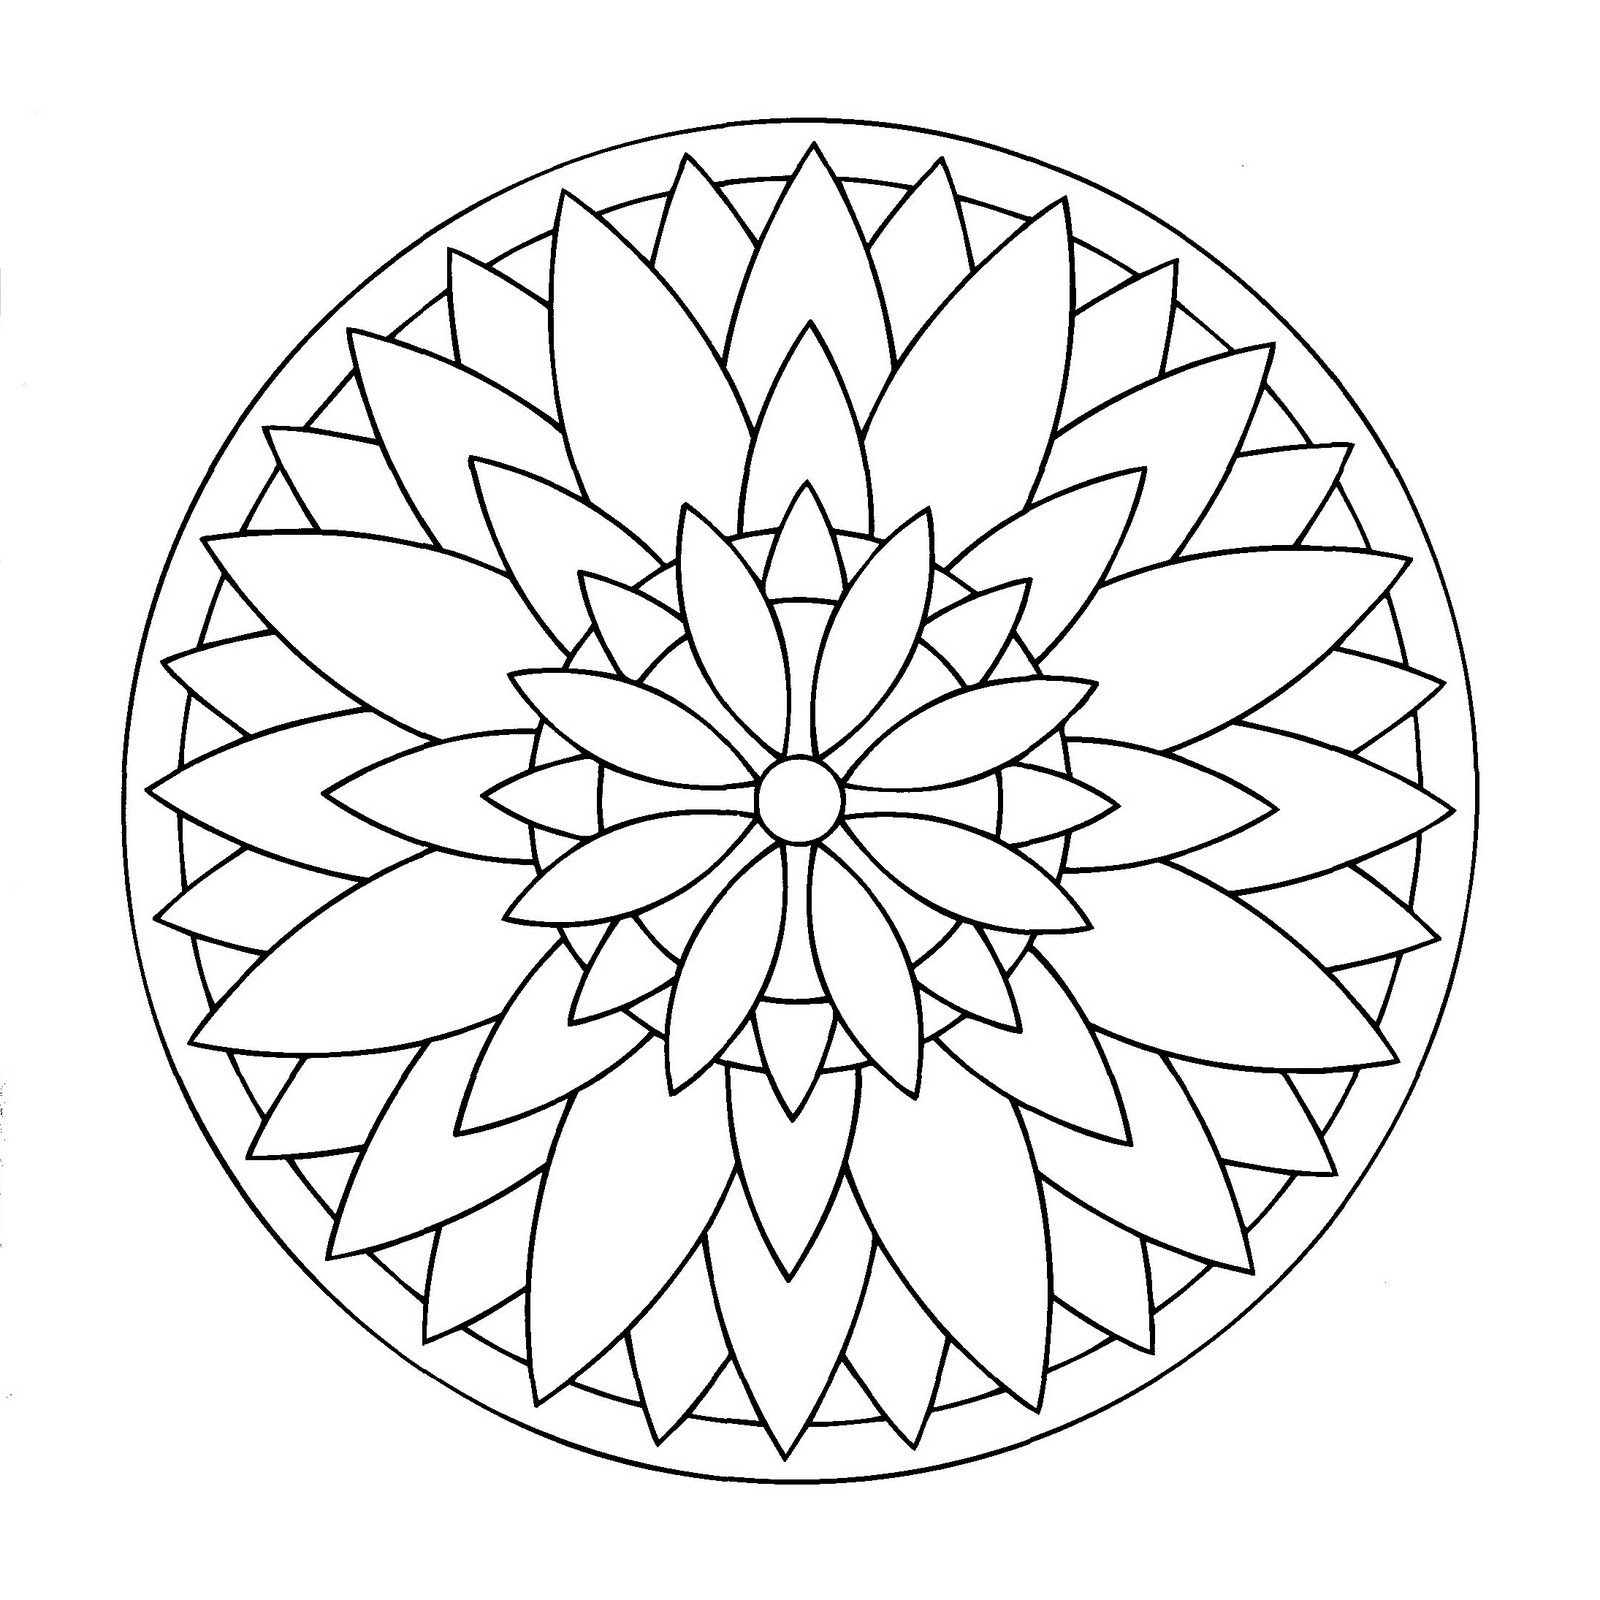 mandala a imprimer 4 coloriage mandalas coloriages pour enfants. Black Bedroom Furniture Sets. Home Design Ideas